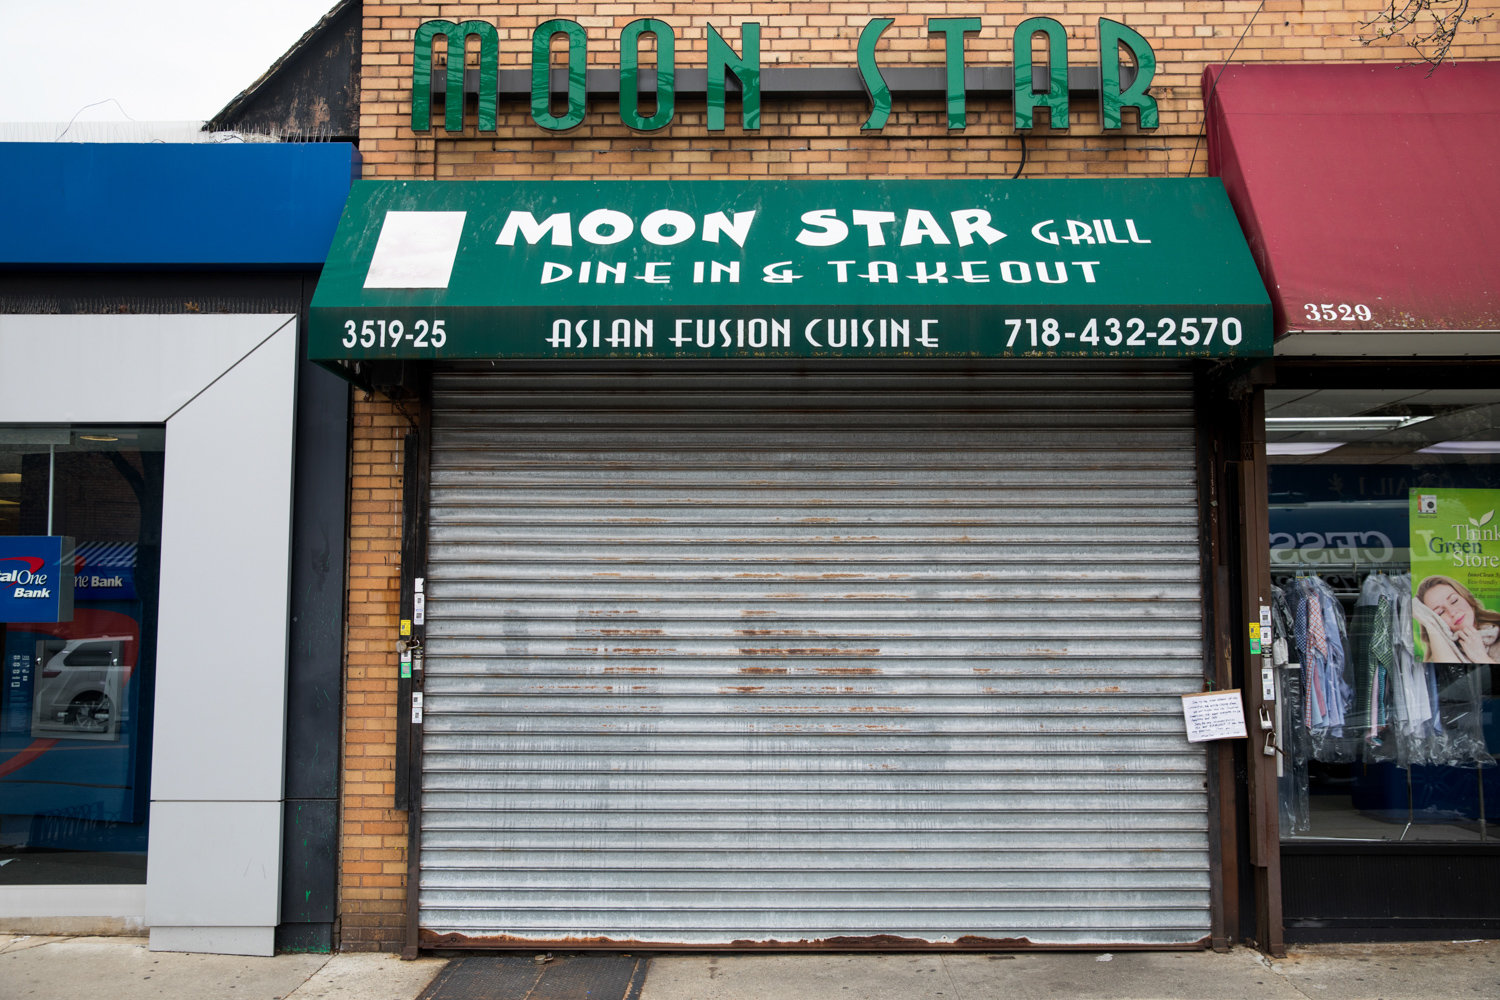 Moon Star is one of several Johnson Avenue eateries that closed as a result of the coronavirus pandemic. Several proposals to help small businesses have been put forward at the state and federal levels, but a concrete plan has yet to be finalized.